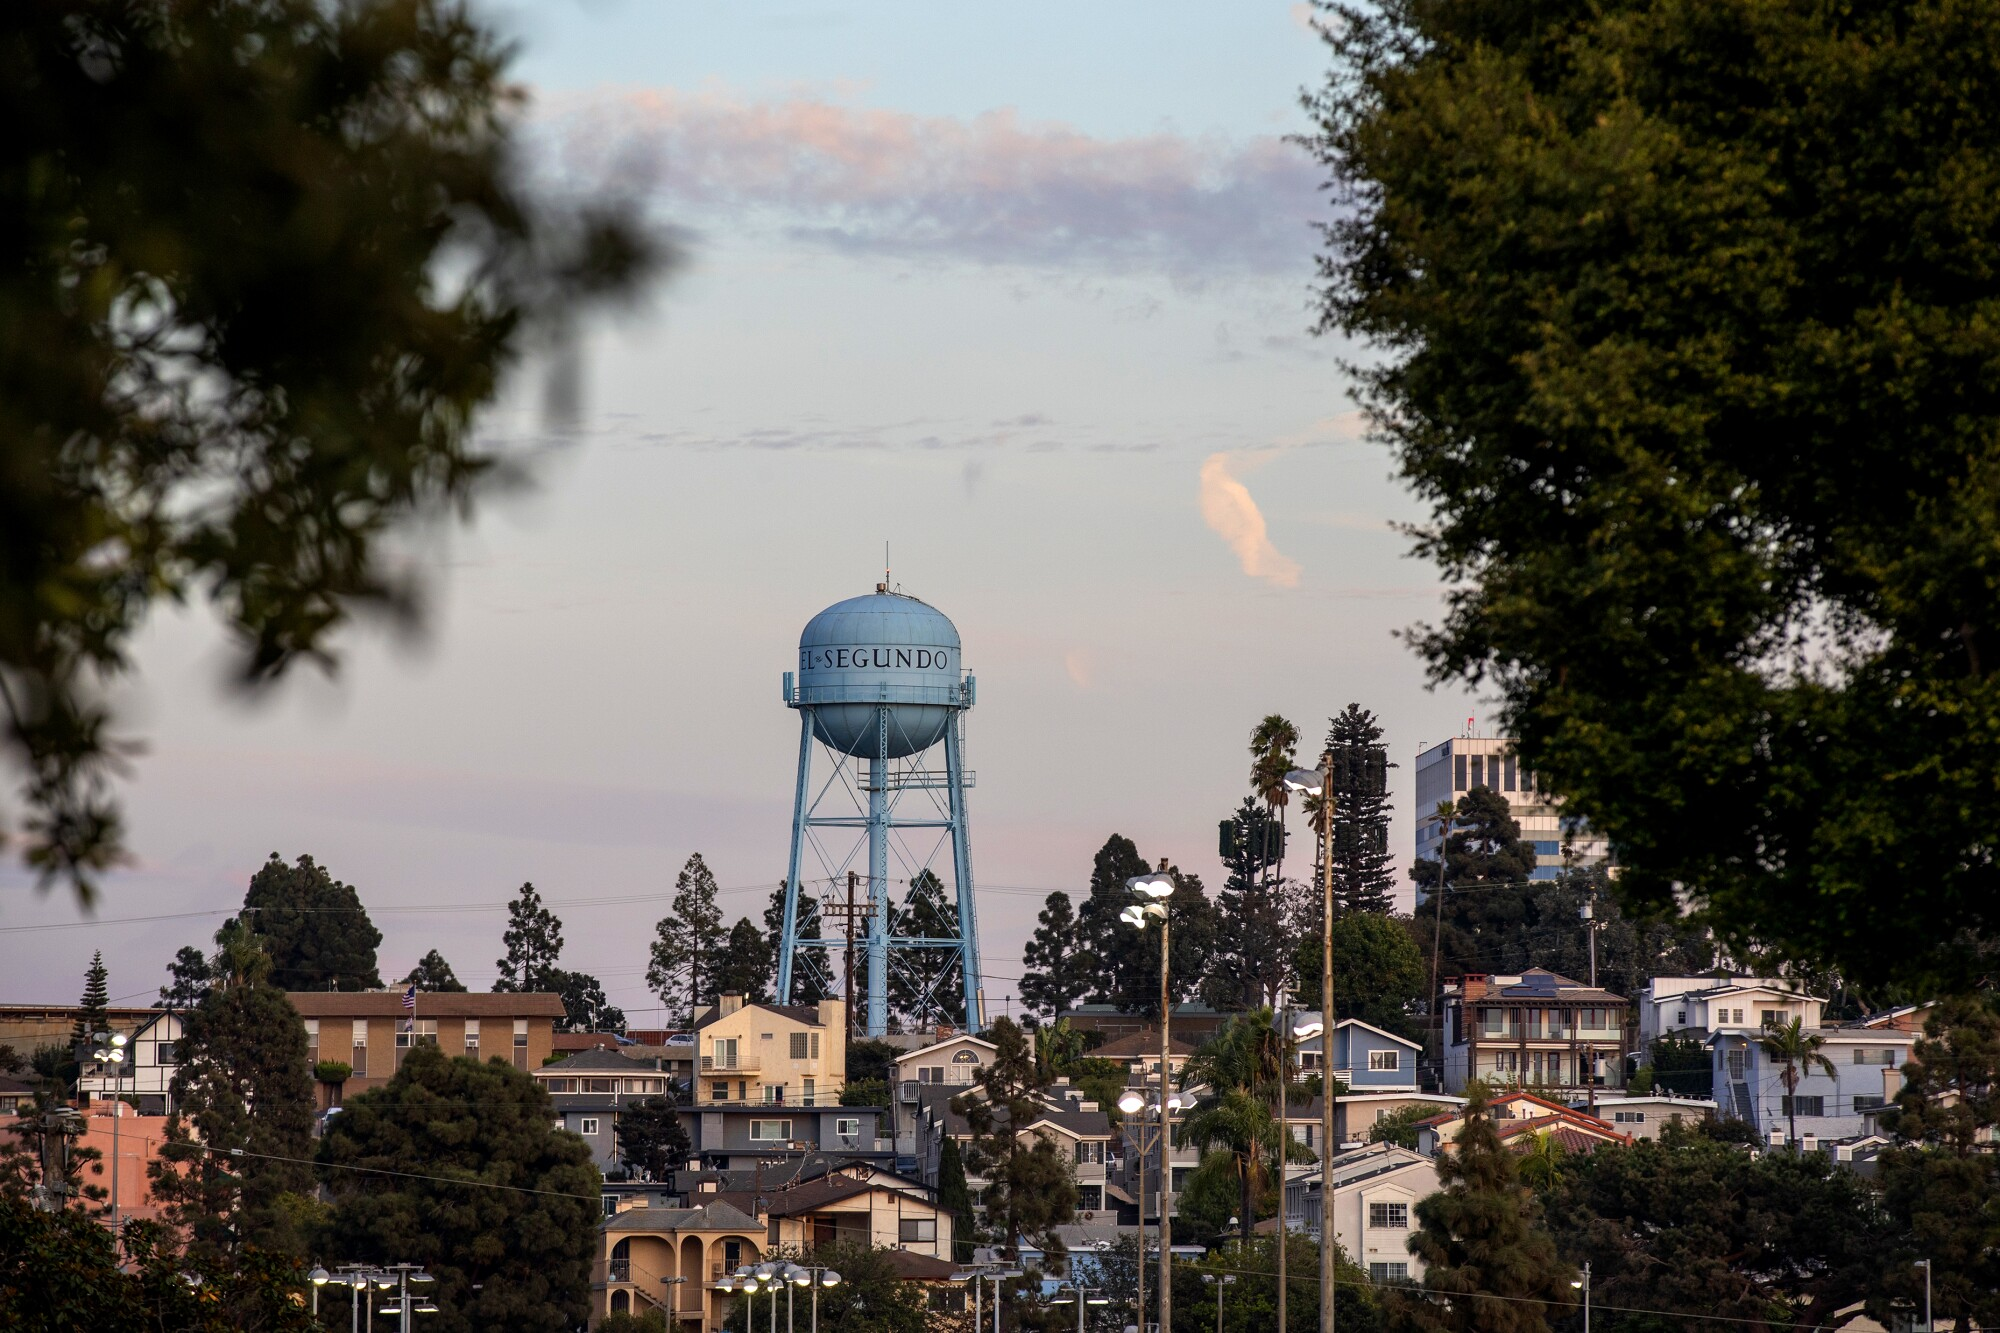 A water tower rises above a surrounding neighborhood